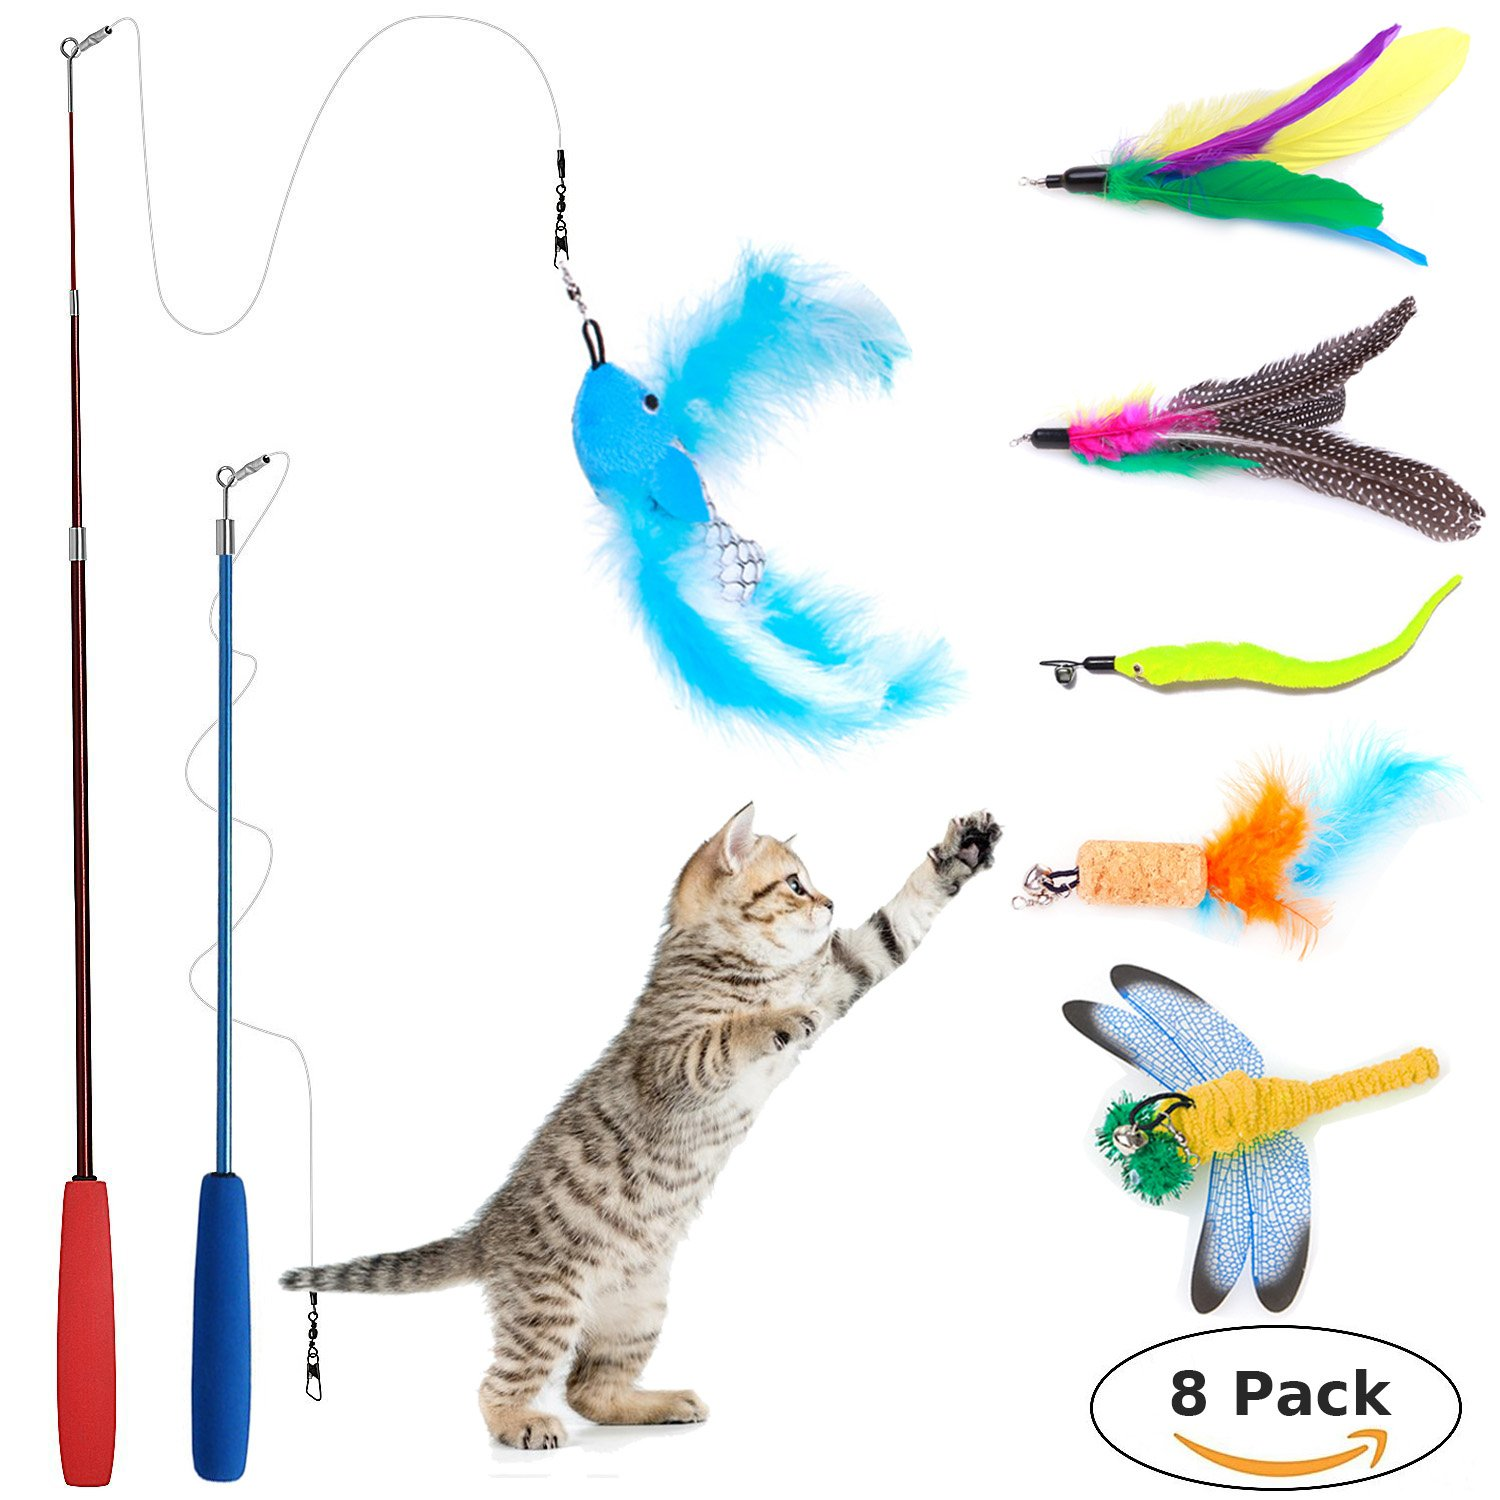 8 Pcs Cat Feather Toy, Cat Toy Wand, Teaser Wand Toy Set, Wineecy Cat Toys Interactive Retractable Wand Rod with Assorted Feather Toy for Exercising Kitten or Cat